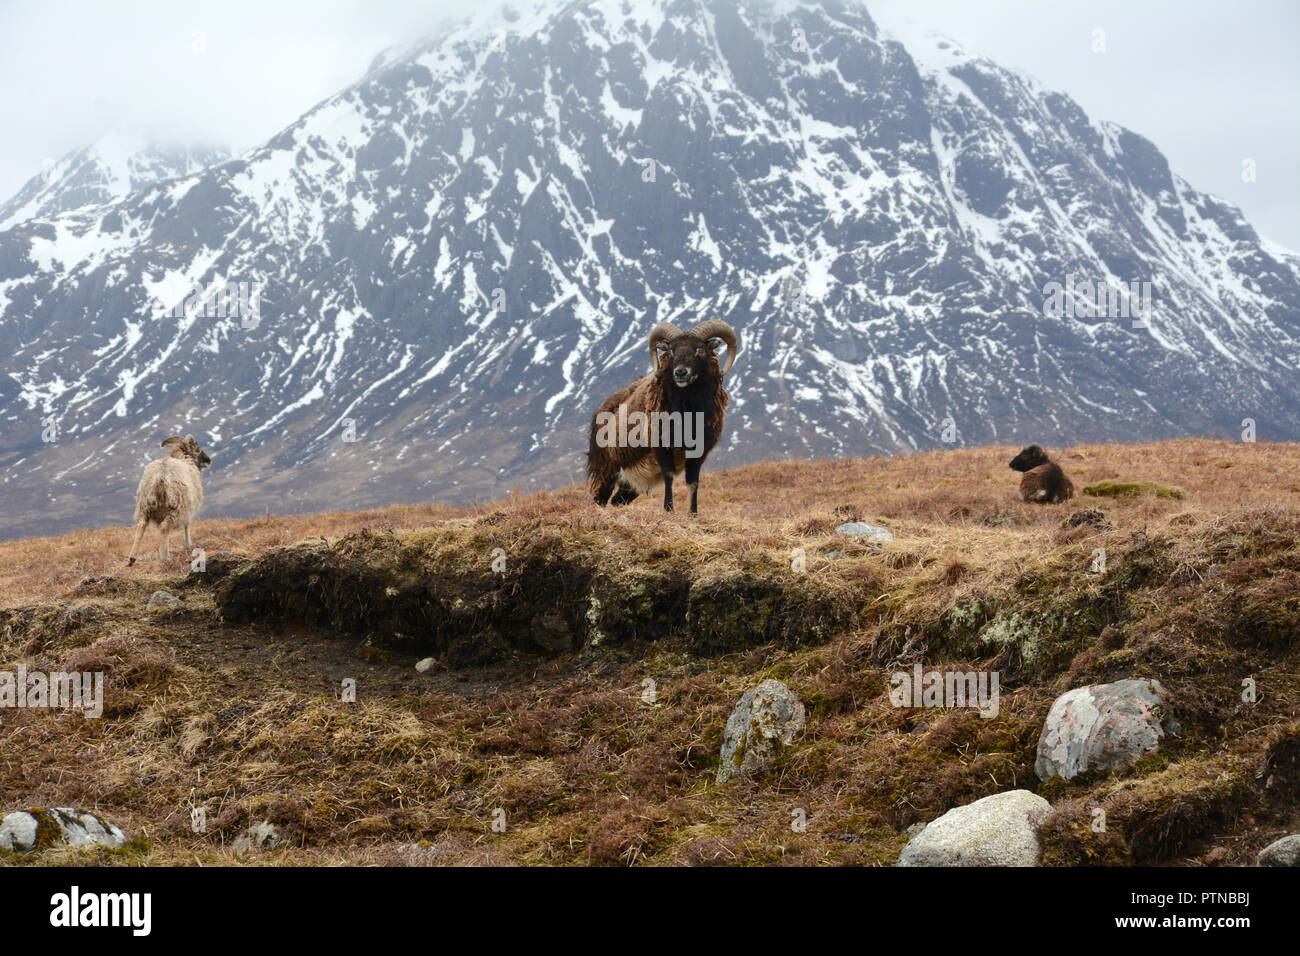 Three feral mountain goats in a meadow below a snowy Buachaille Etive Mor, near Glen Etive, in the Scottish Highlands, Scotland, United Kingdom. - Stock Image